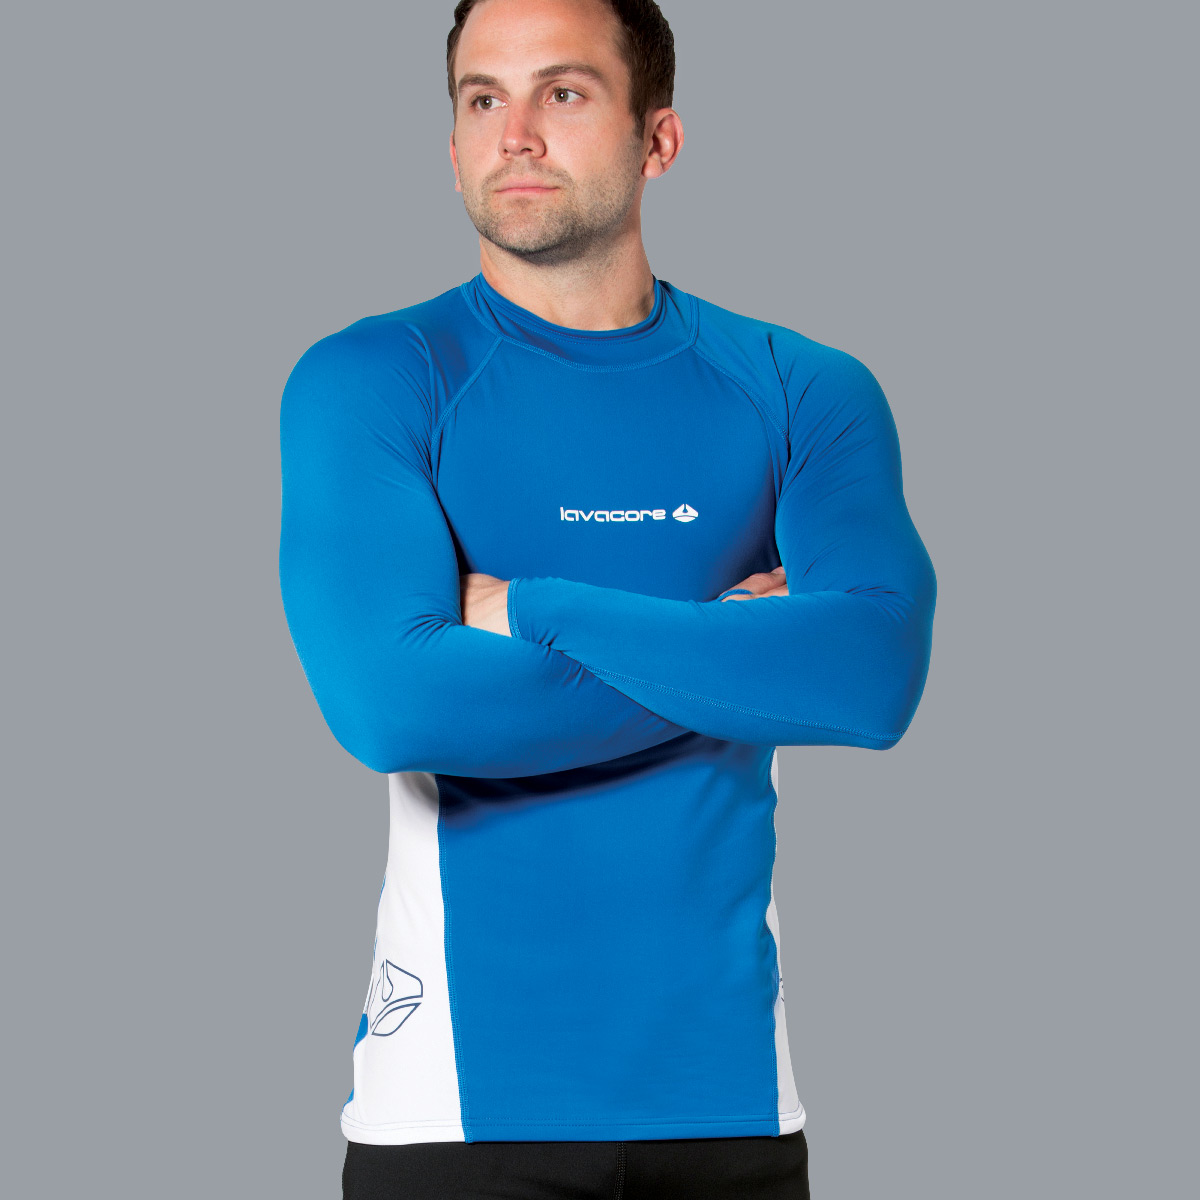 LAVASKIN LONG -SLEEVE SHIRT ( additional colors available )